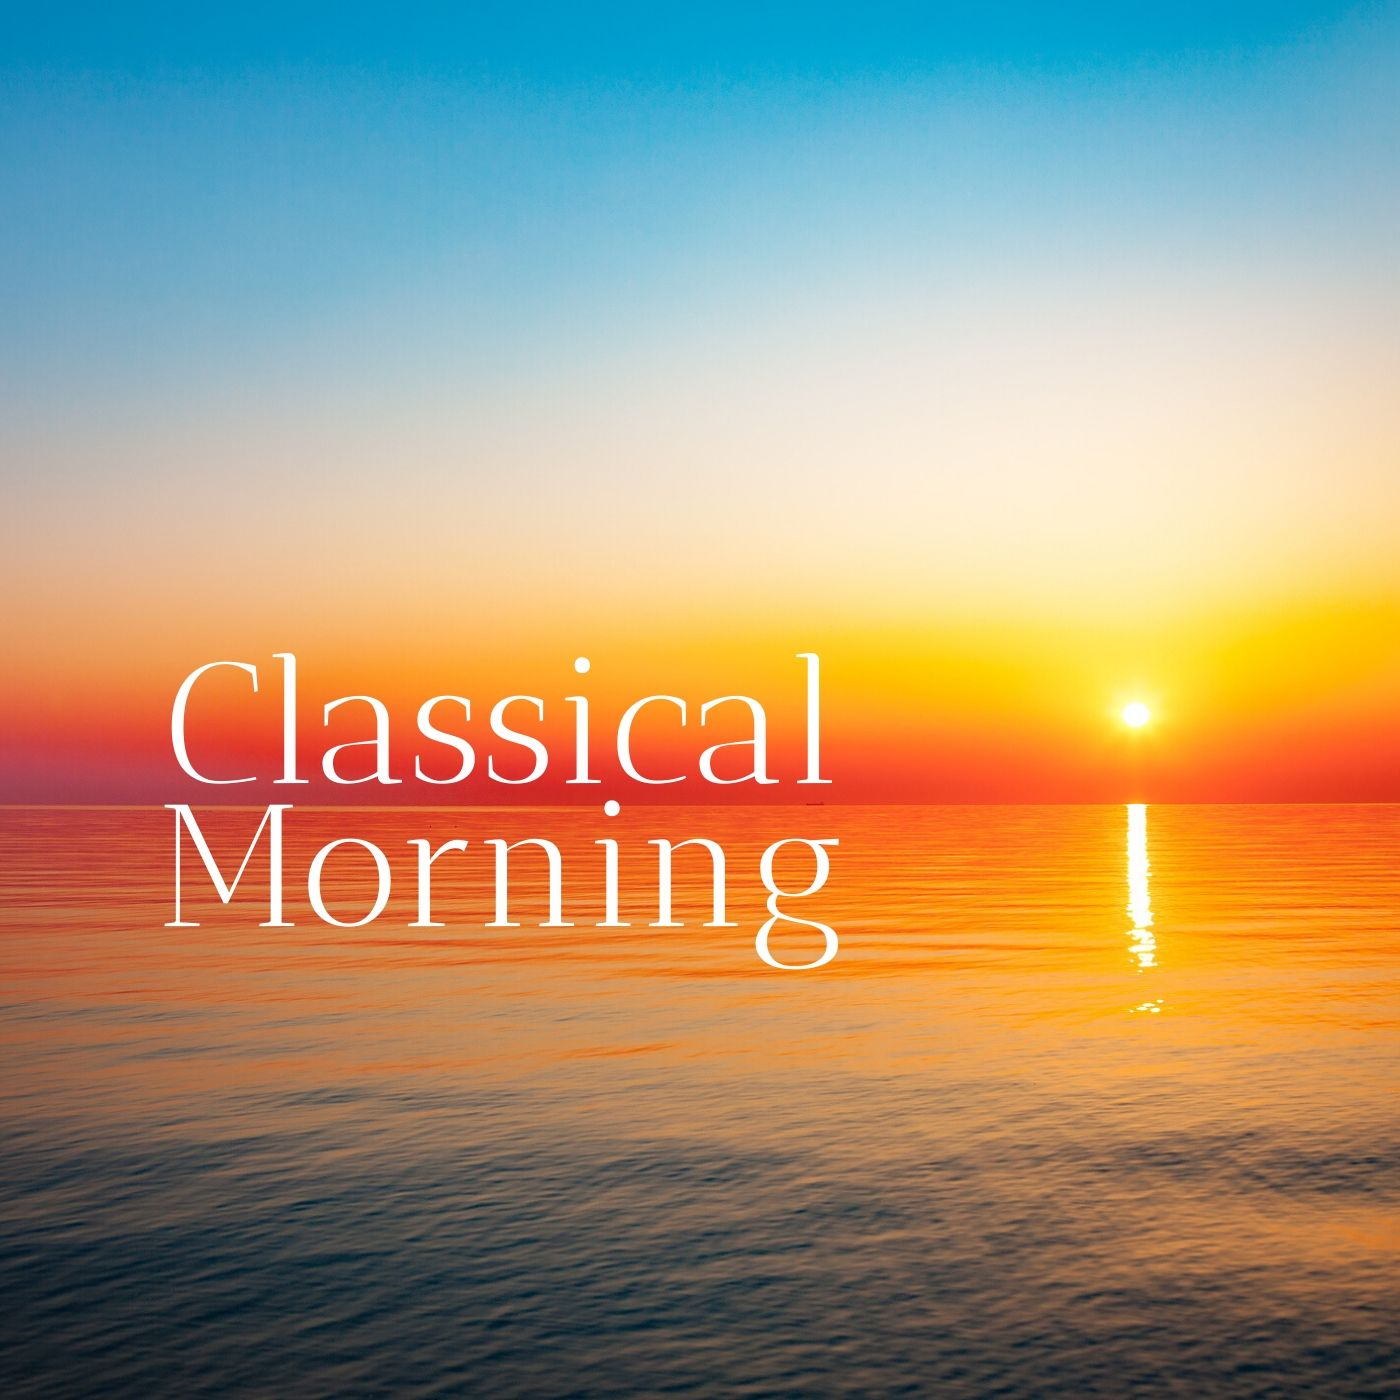 Classical Morning: Relaxing, Uplifting Classical Music